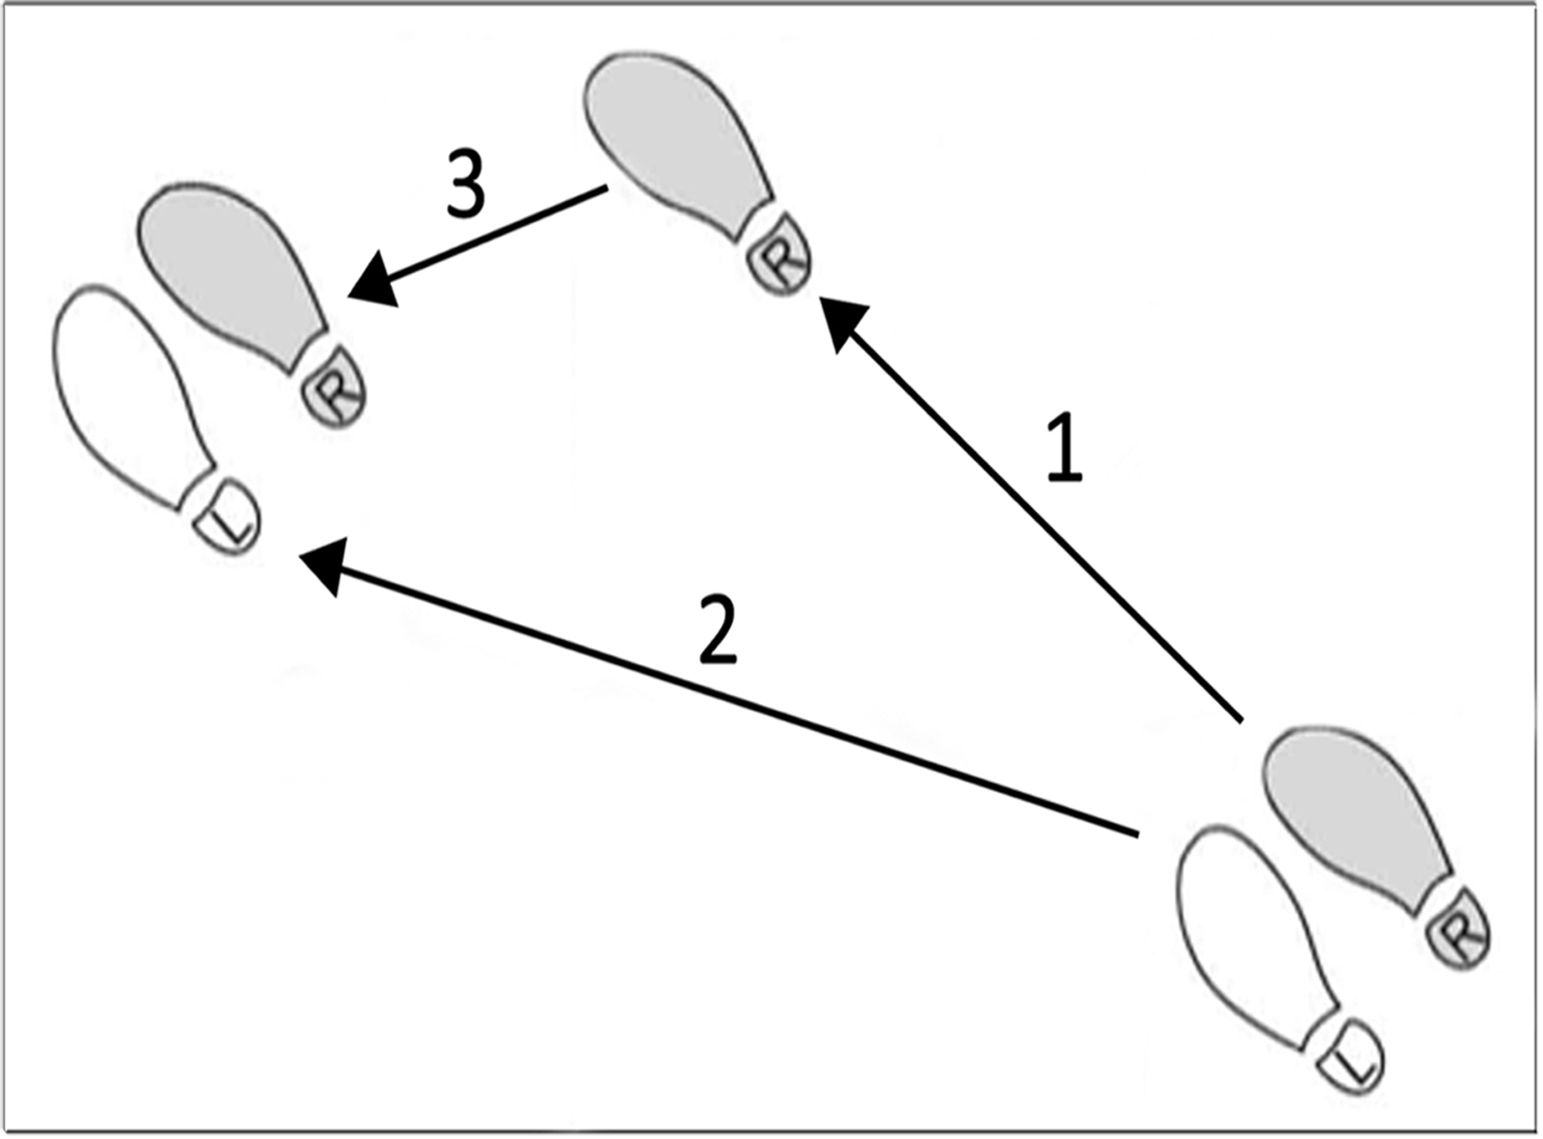 2 step dance steps diagram